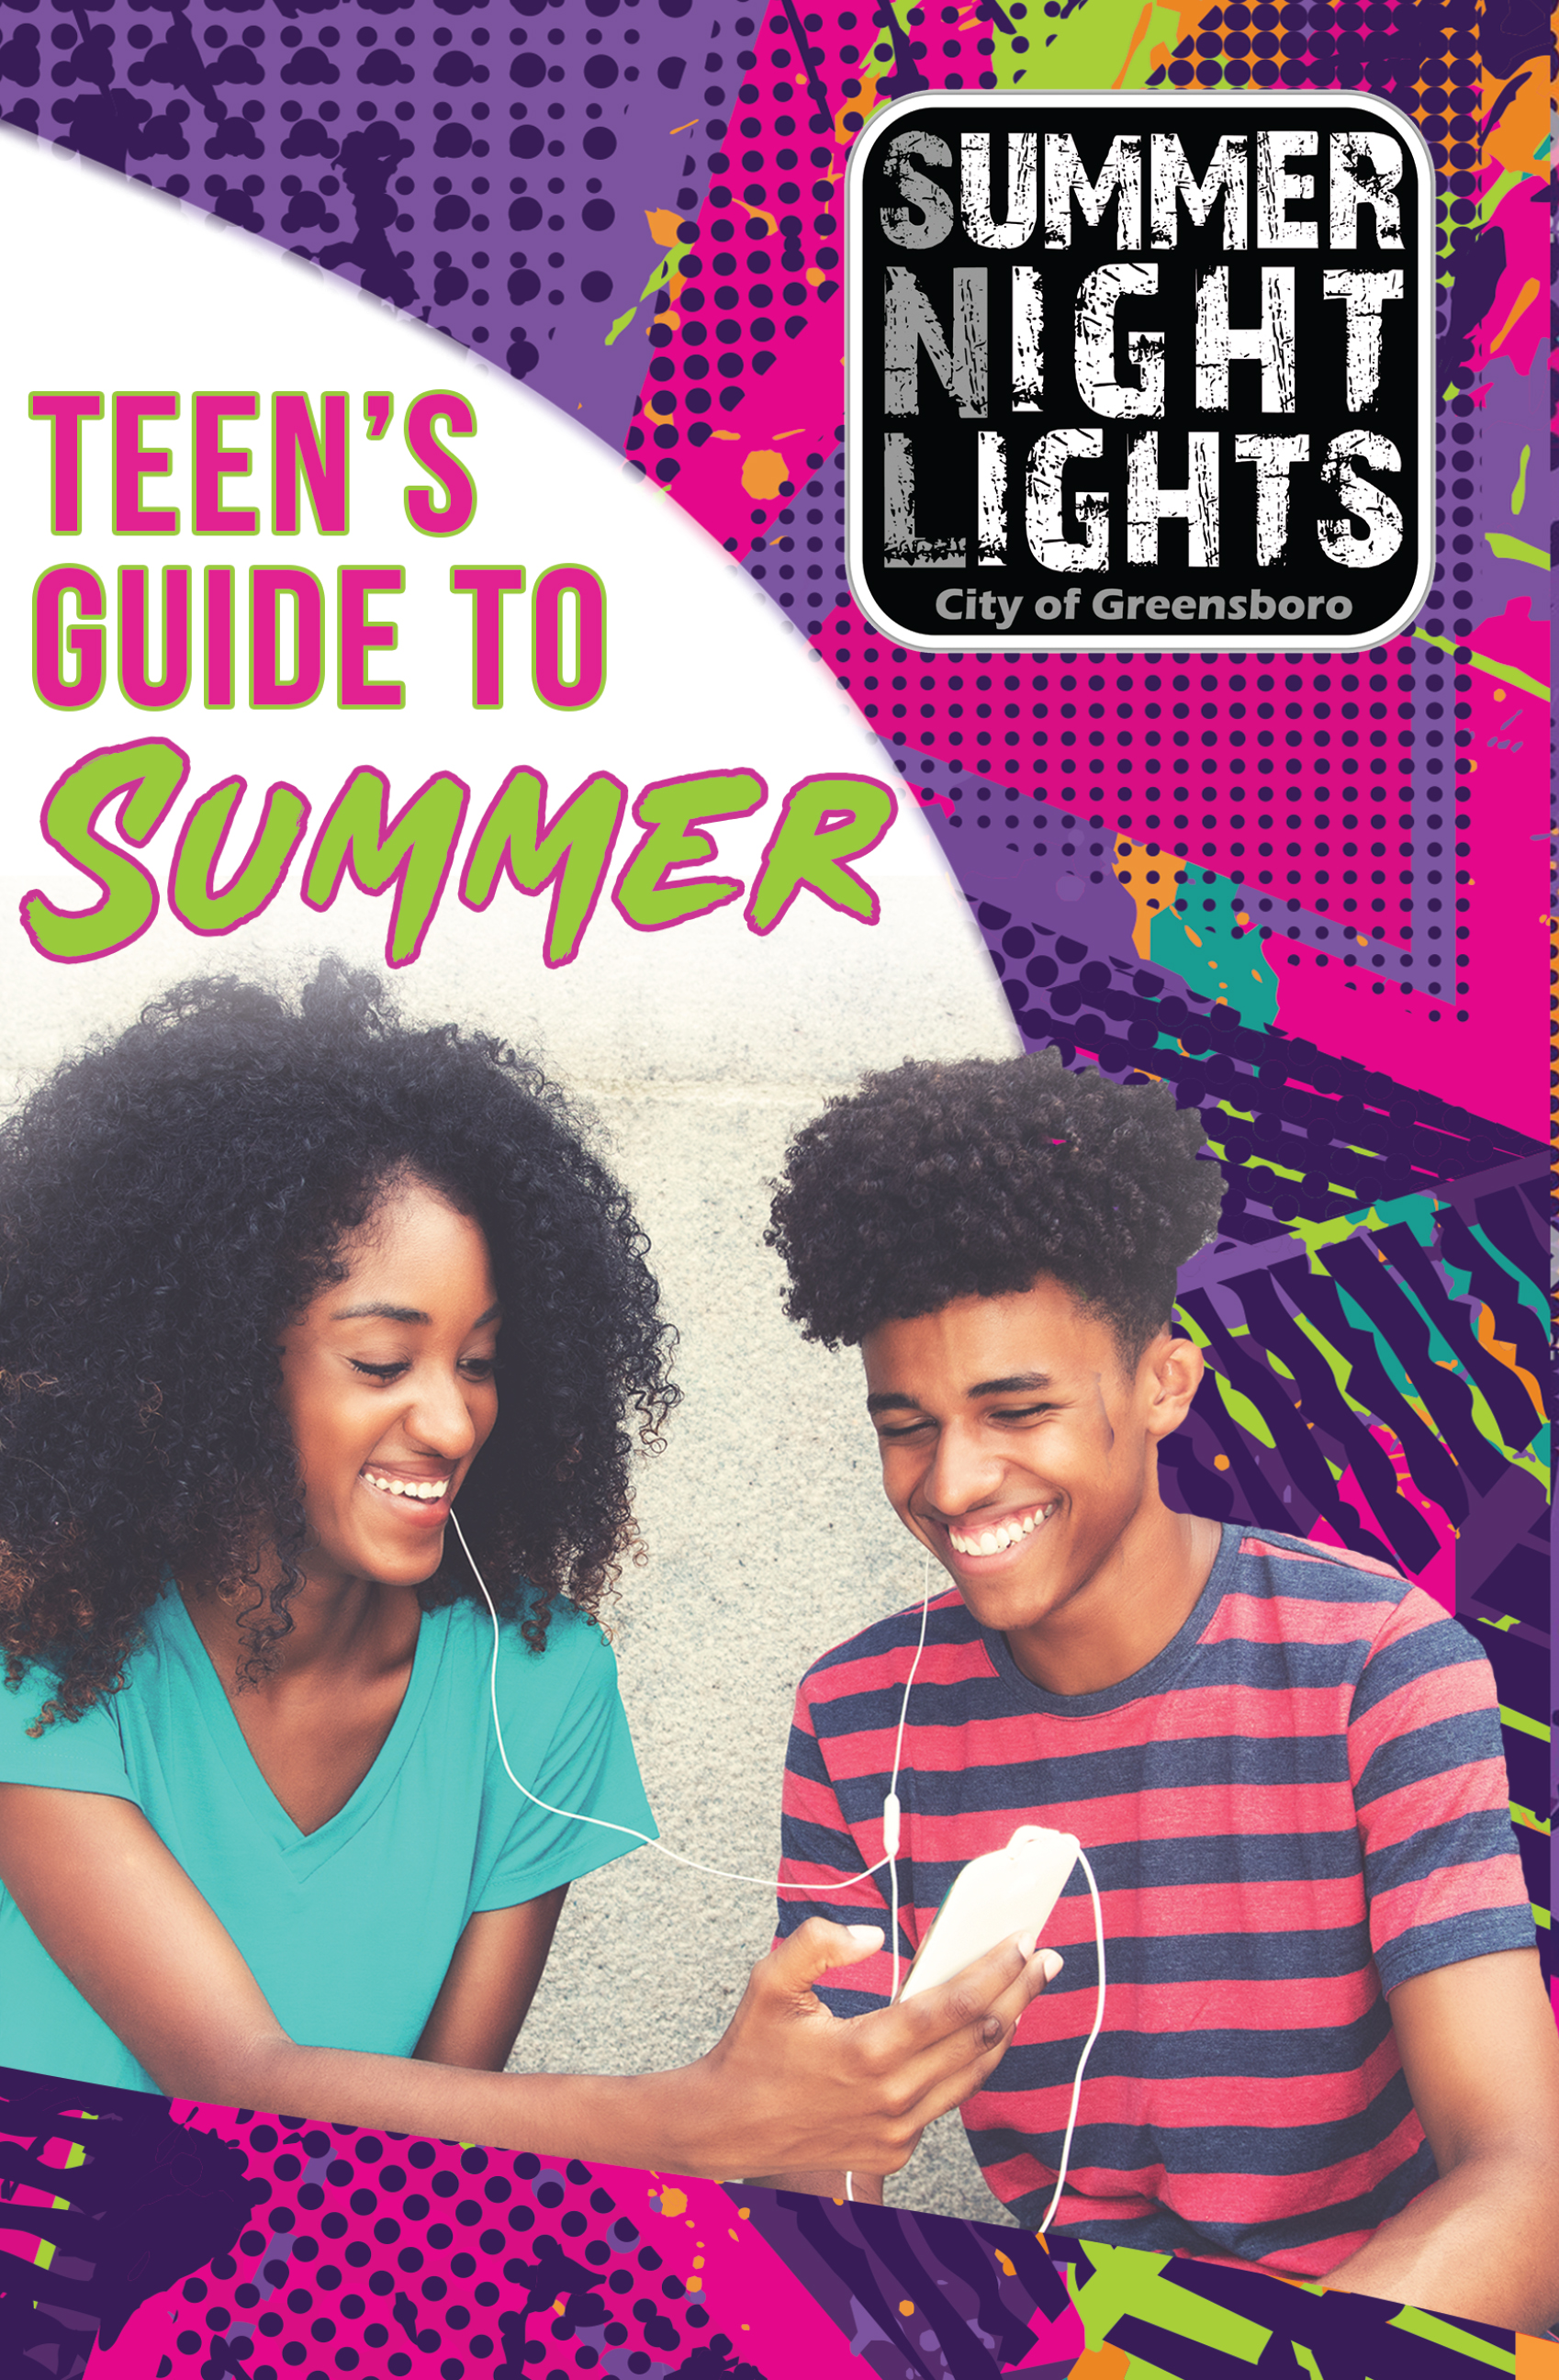 Teens looking at cell phone together. Text: Teen's Guide to Summer; Summer Night Lights City of Greensboro